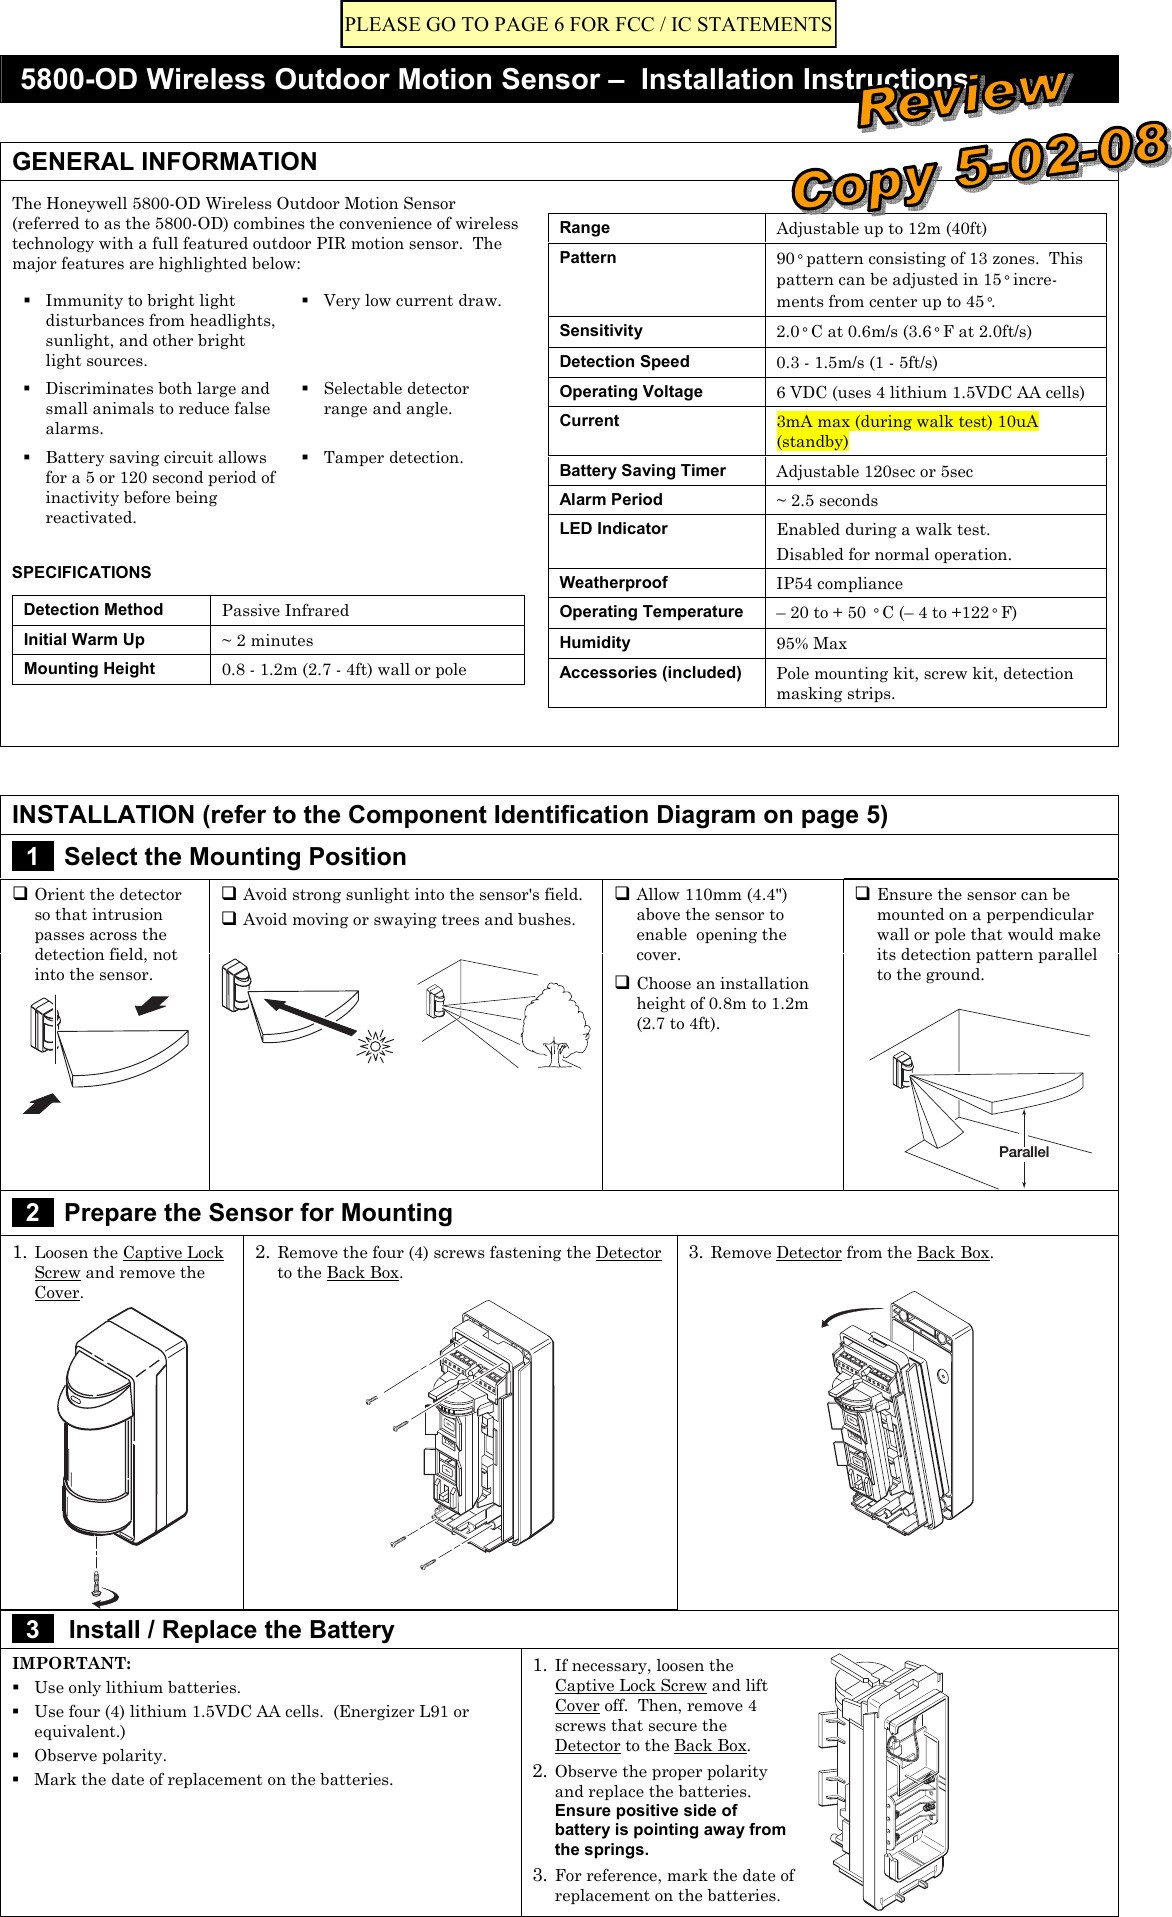 motion detector wiring diagram wiring diagram for outdoor motion detector light inspirational 8dl5800pir od security transmitter user manual 5890 od wireless 19t